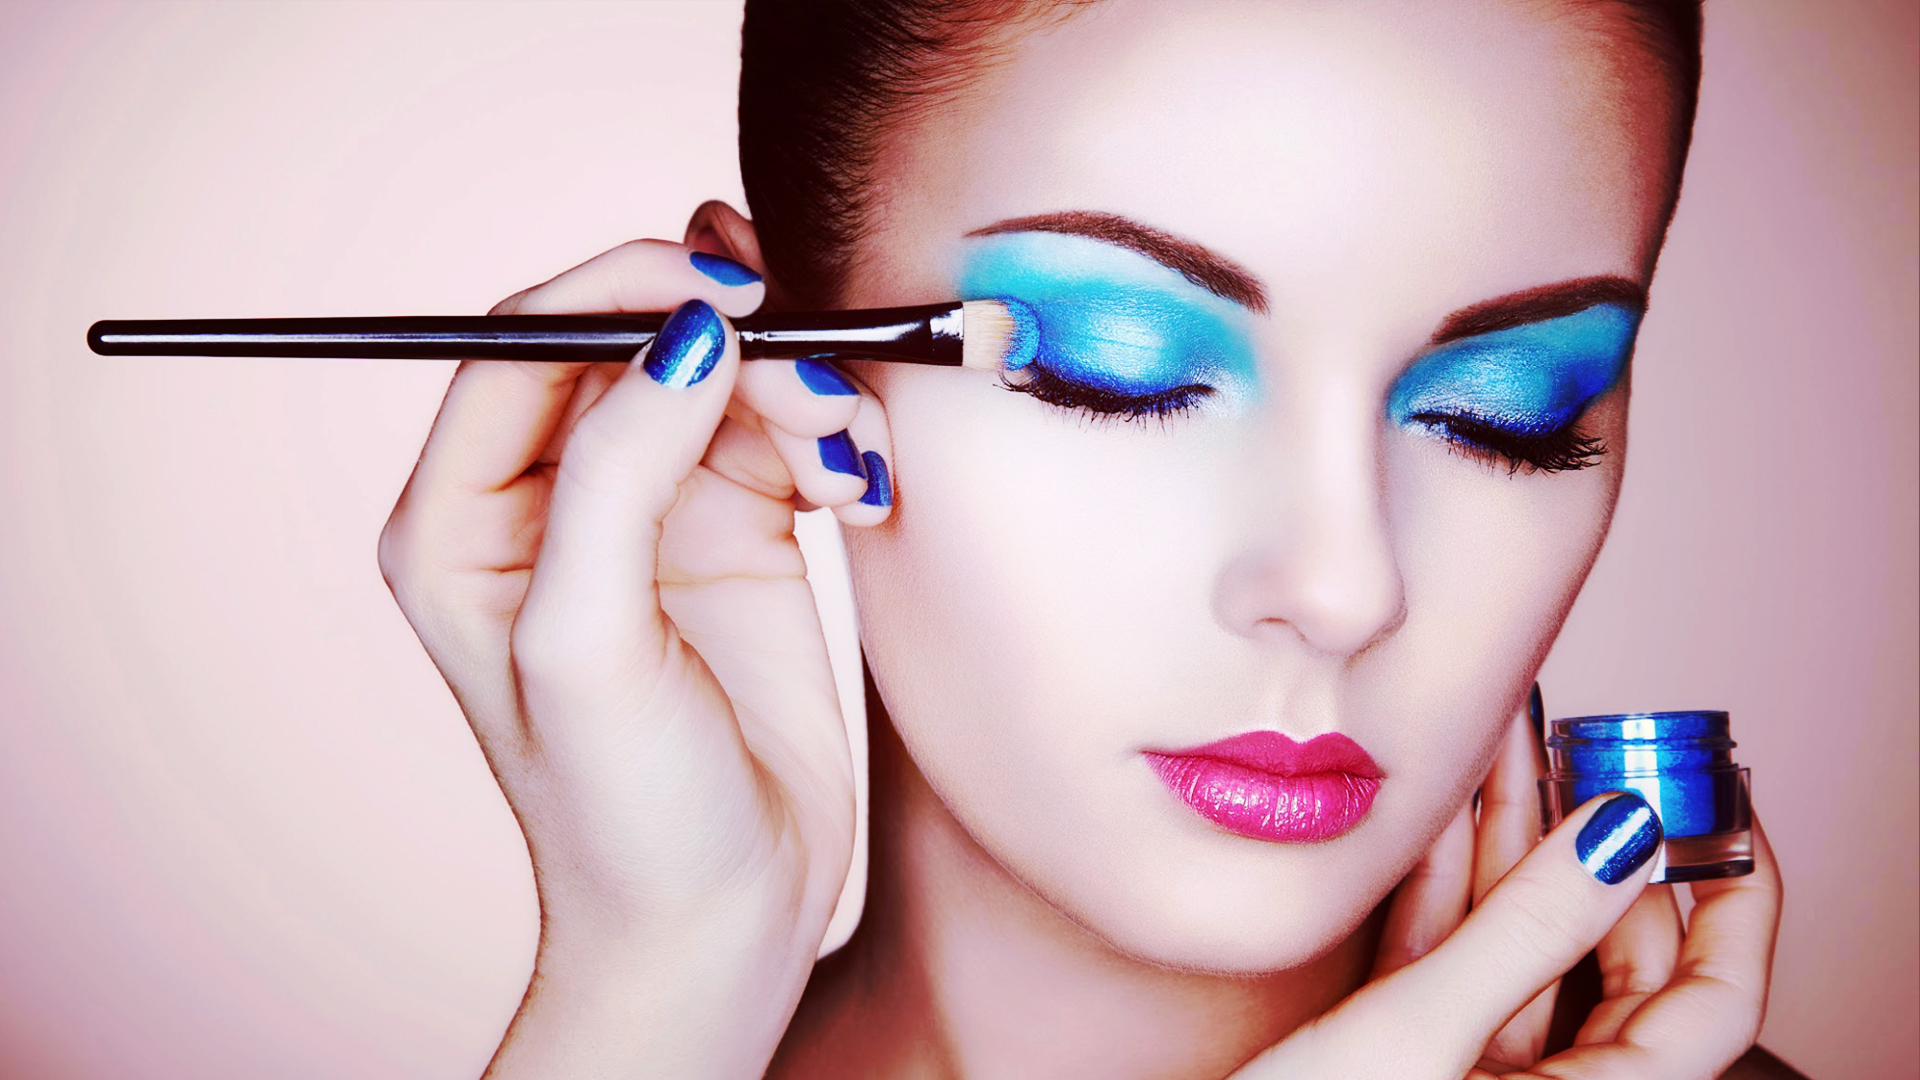 blue eye makeup wallpaper 59560